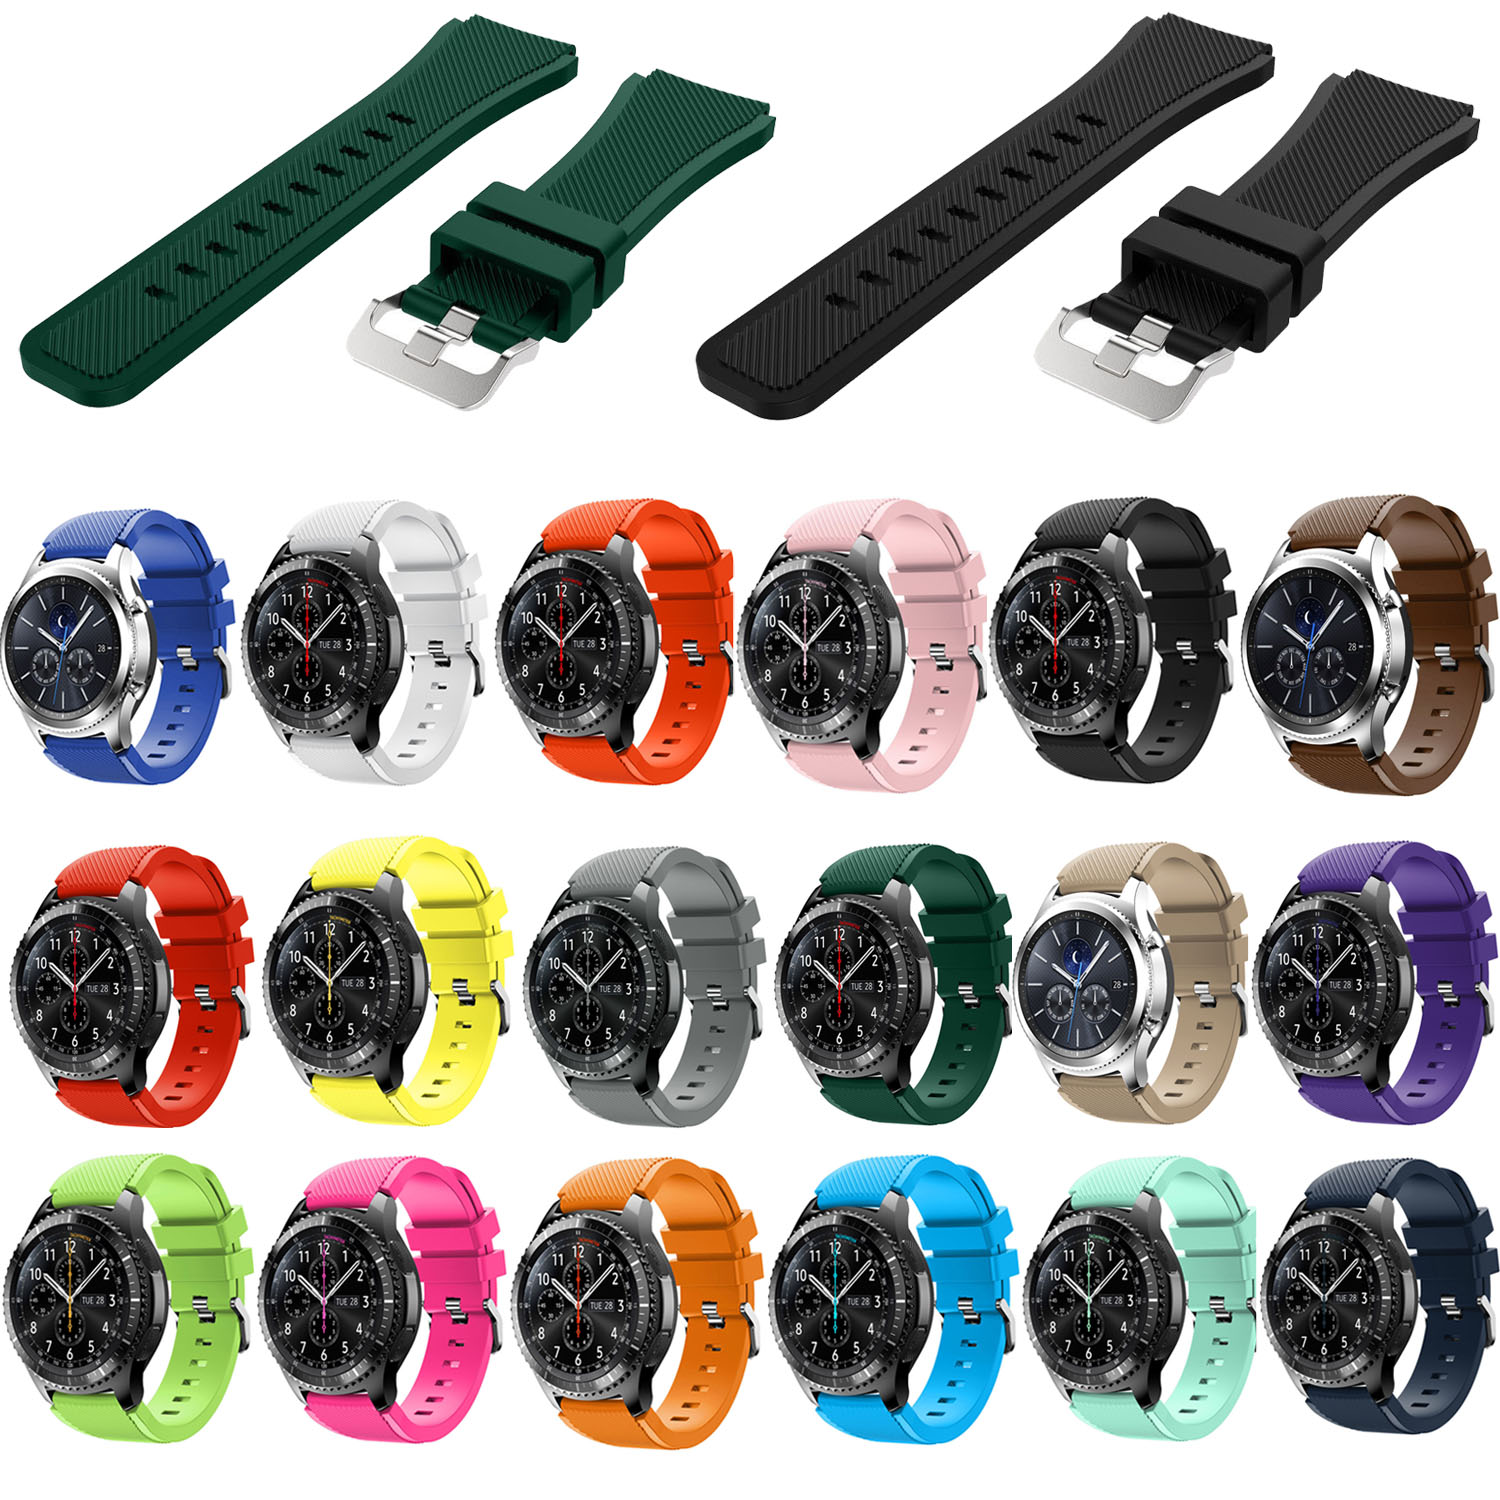 18 Colors Rubber Wrist Strap for Samsung Gear S3 Frontier Silicone Watch Band for Samsung Gear S3 Classic Bracelet Band 22mm tearoke 11 color silicone watchband for gear s3 classic frontier 22mm watch band strap replacement bracelet for samsung gear s3